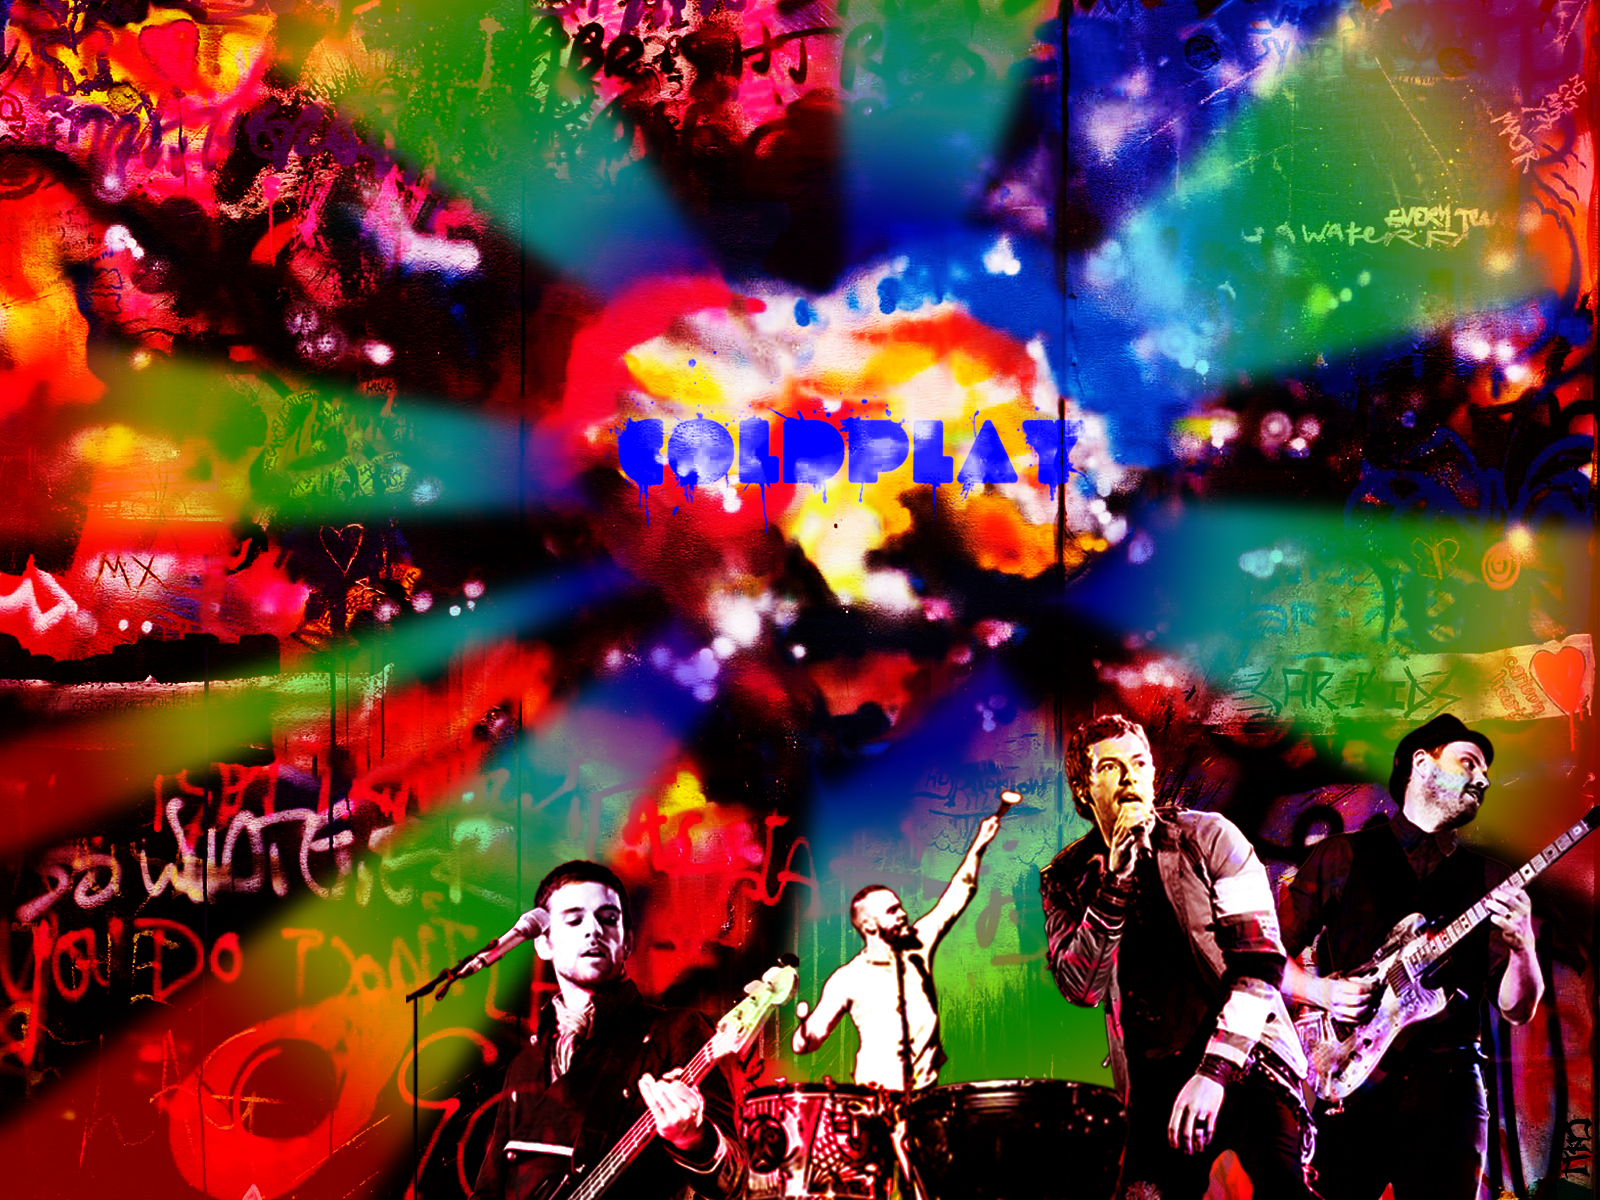 Coldplay Consert Image Wallpaper Wide